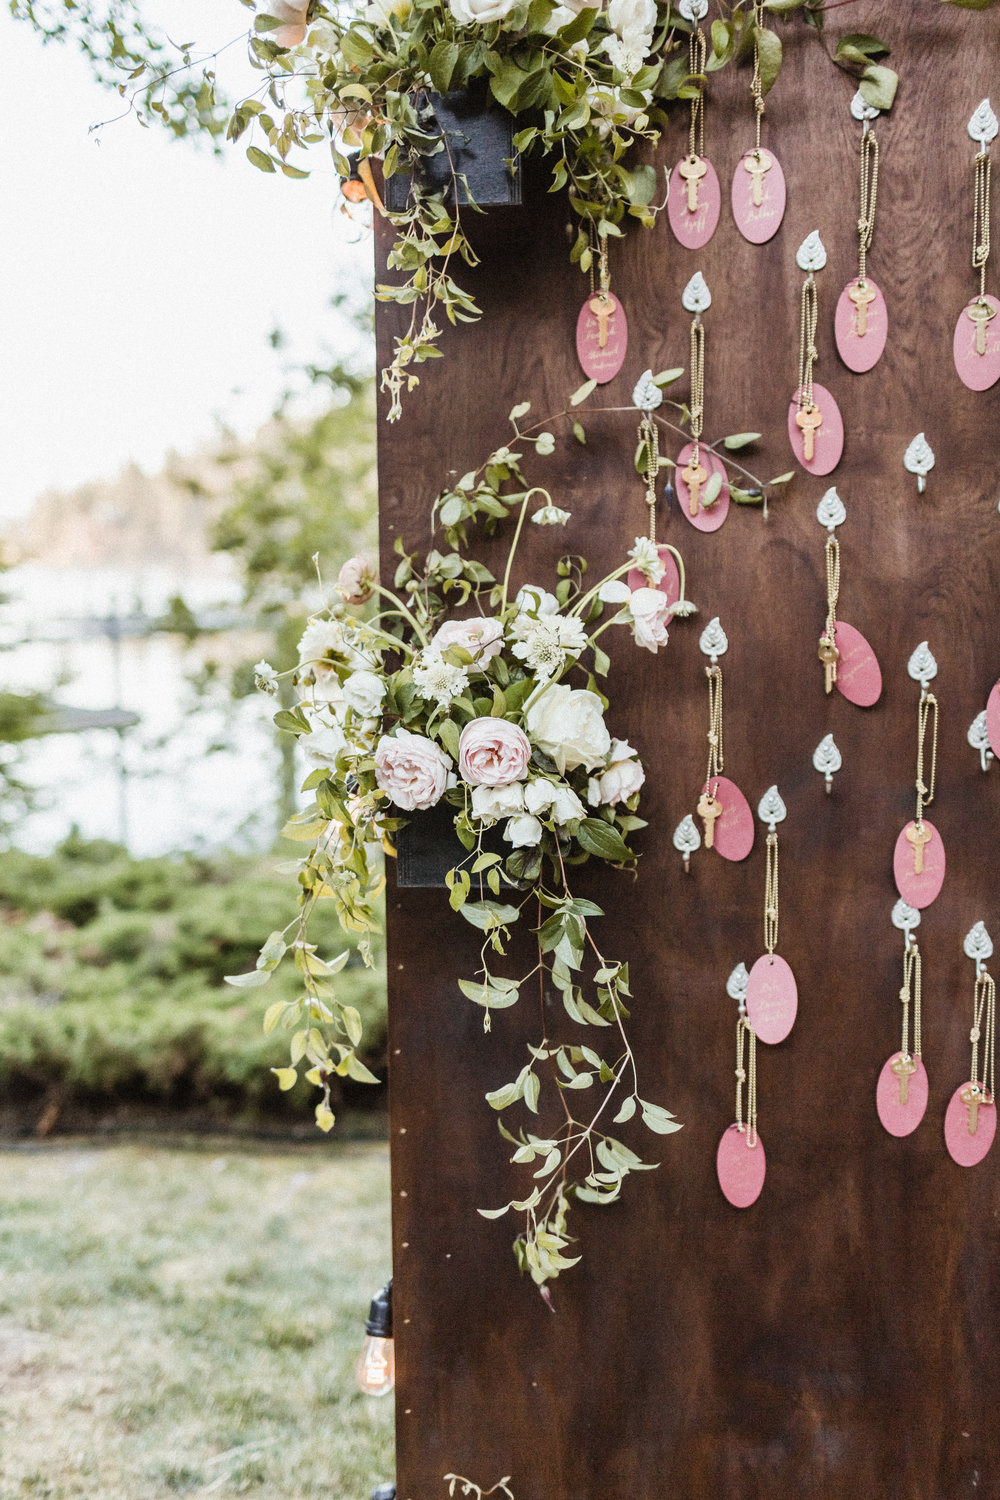 Julianne Hough and Brooks Laich Wedding - Wild Bloom Floral - Sarah Falugo Photography - Simply Troy Event Design